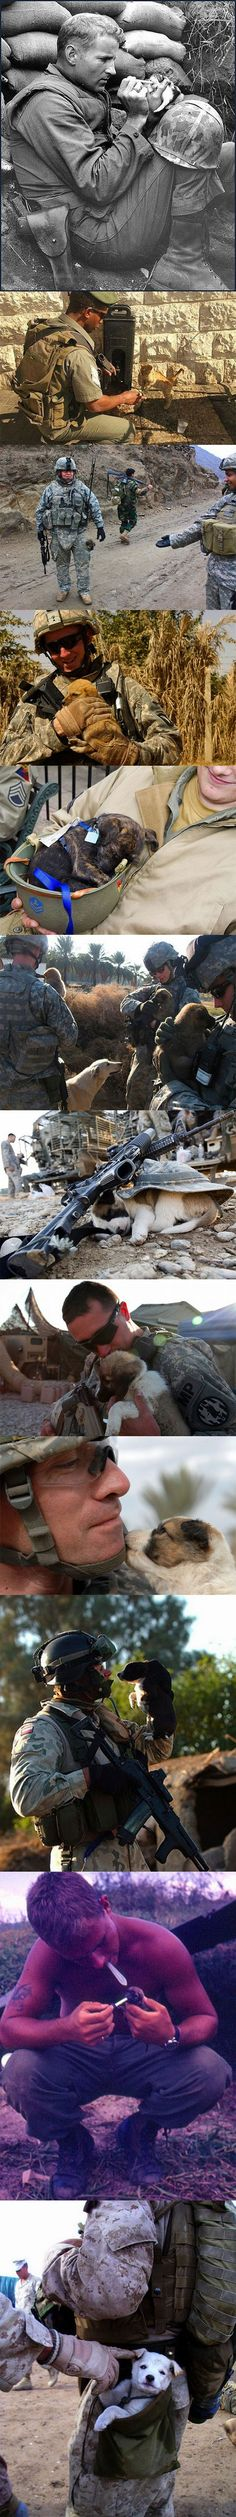 Animals in war. @Hillary Talken